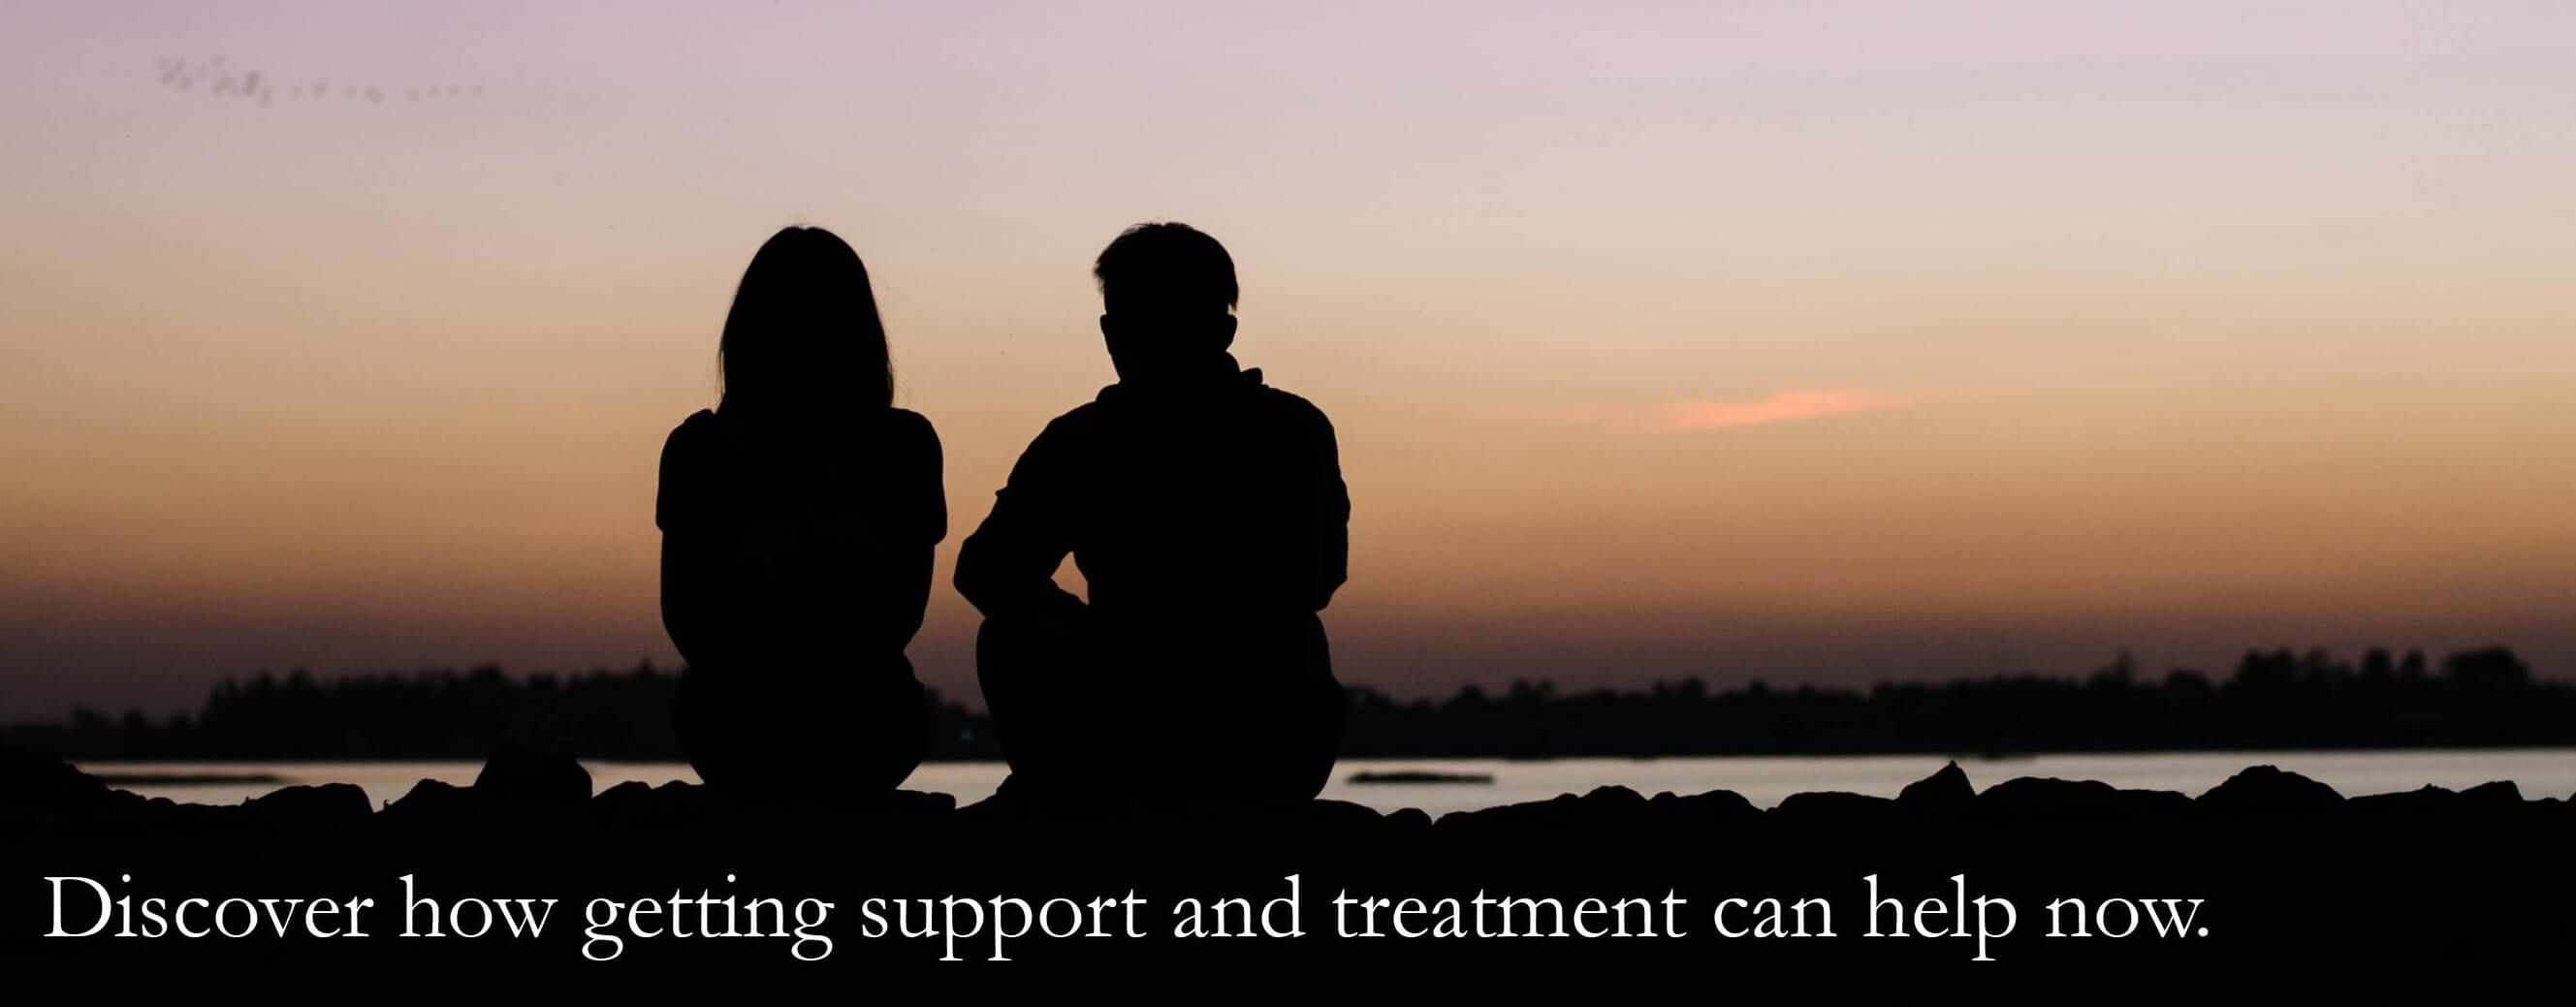 Discover how getting support and treatment can help now.